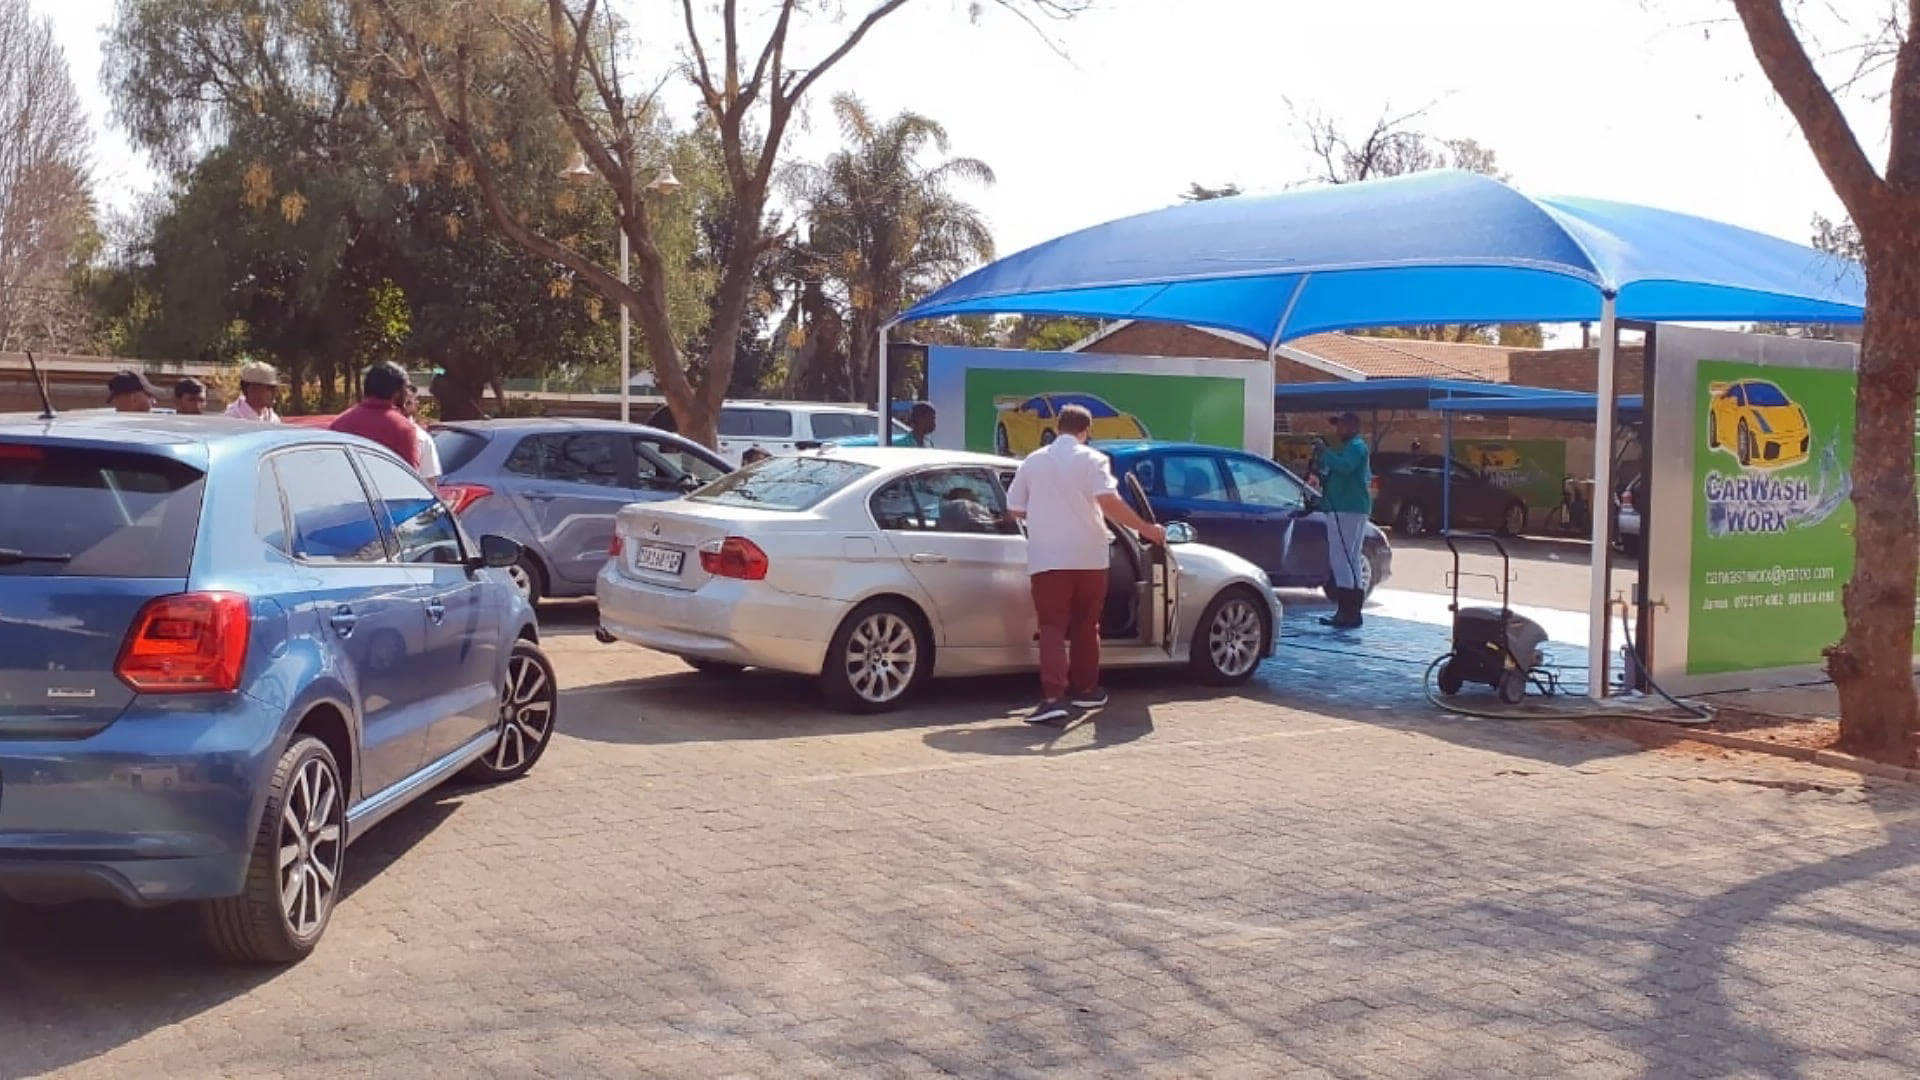 Car Wash Franchises Available, CarWash Worx Head Office, Join The Leading Car Wash Franchising Group, Start Your Own Successful Car Wash Business Now